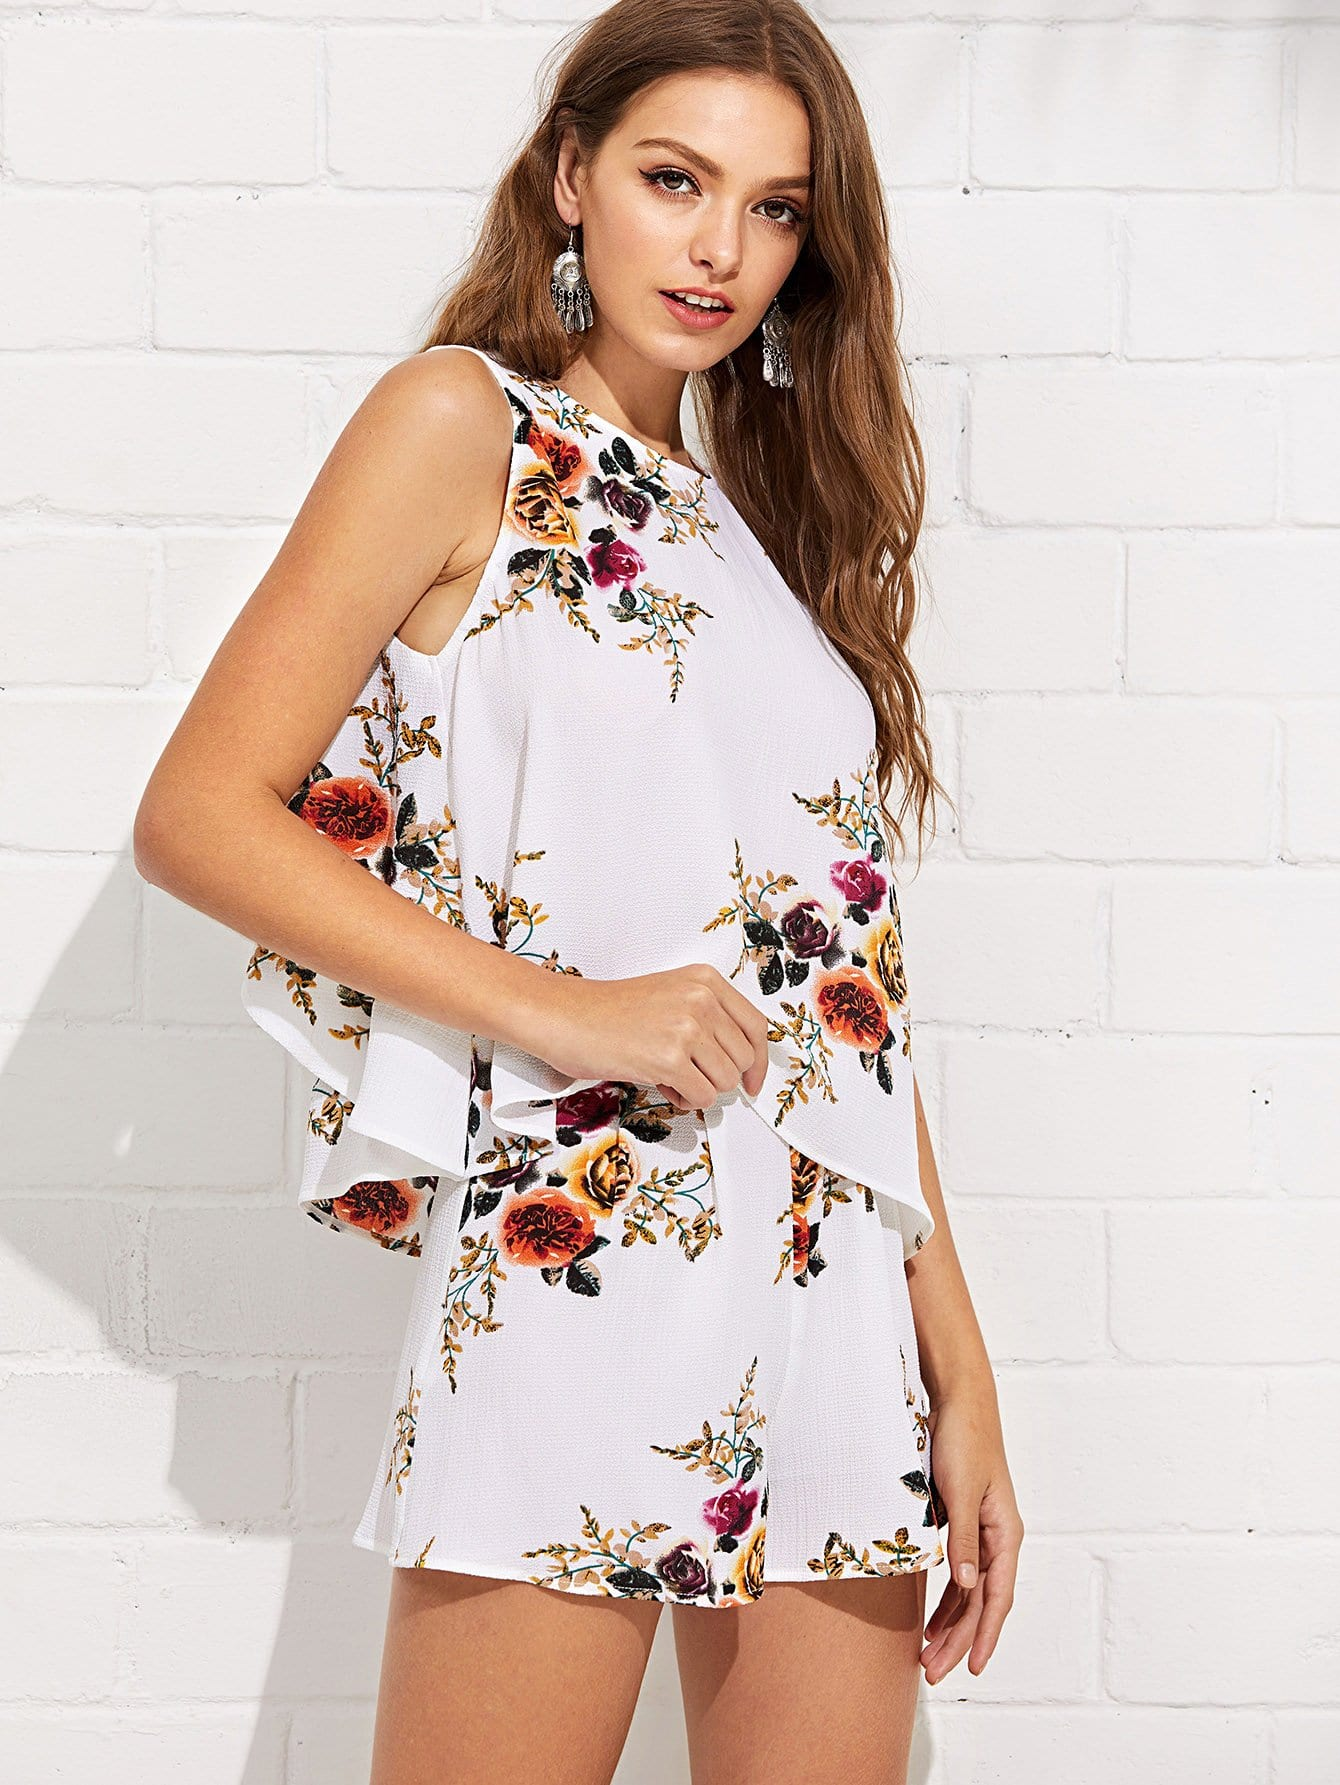 Layered Back Floral Top & Shorts Set layered sleeve floral top